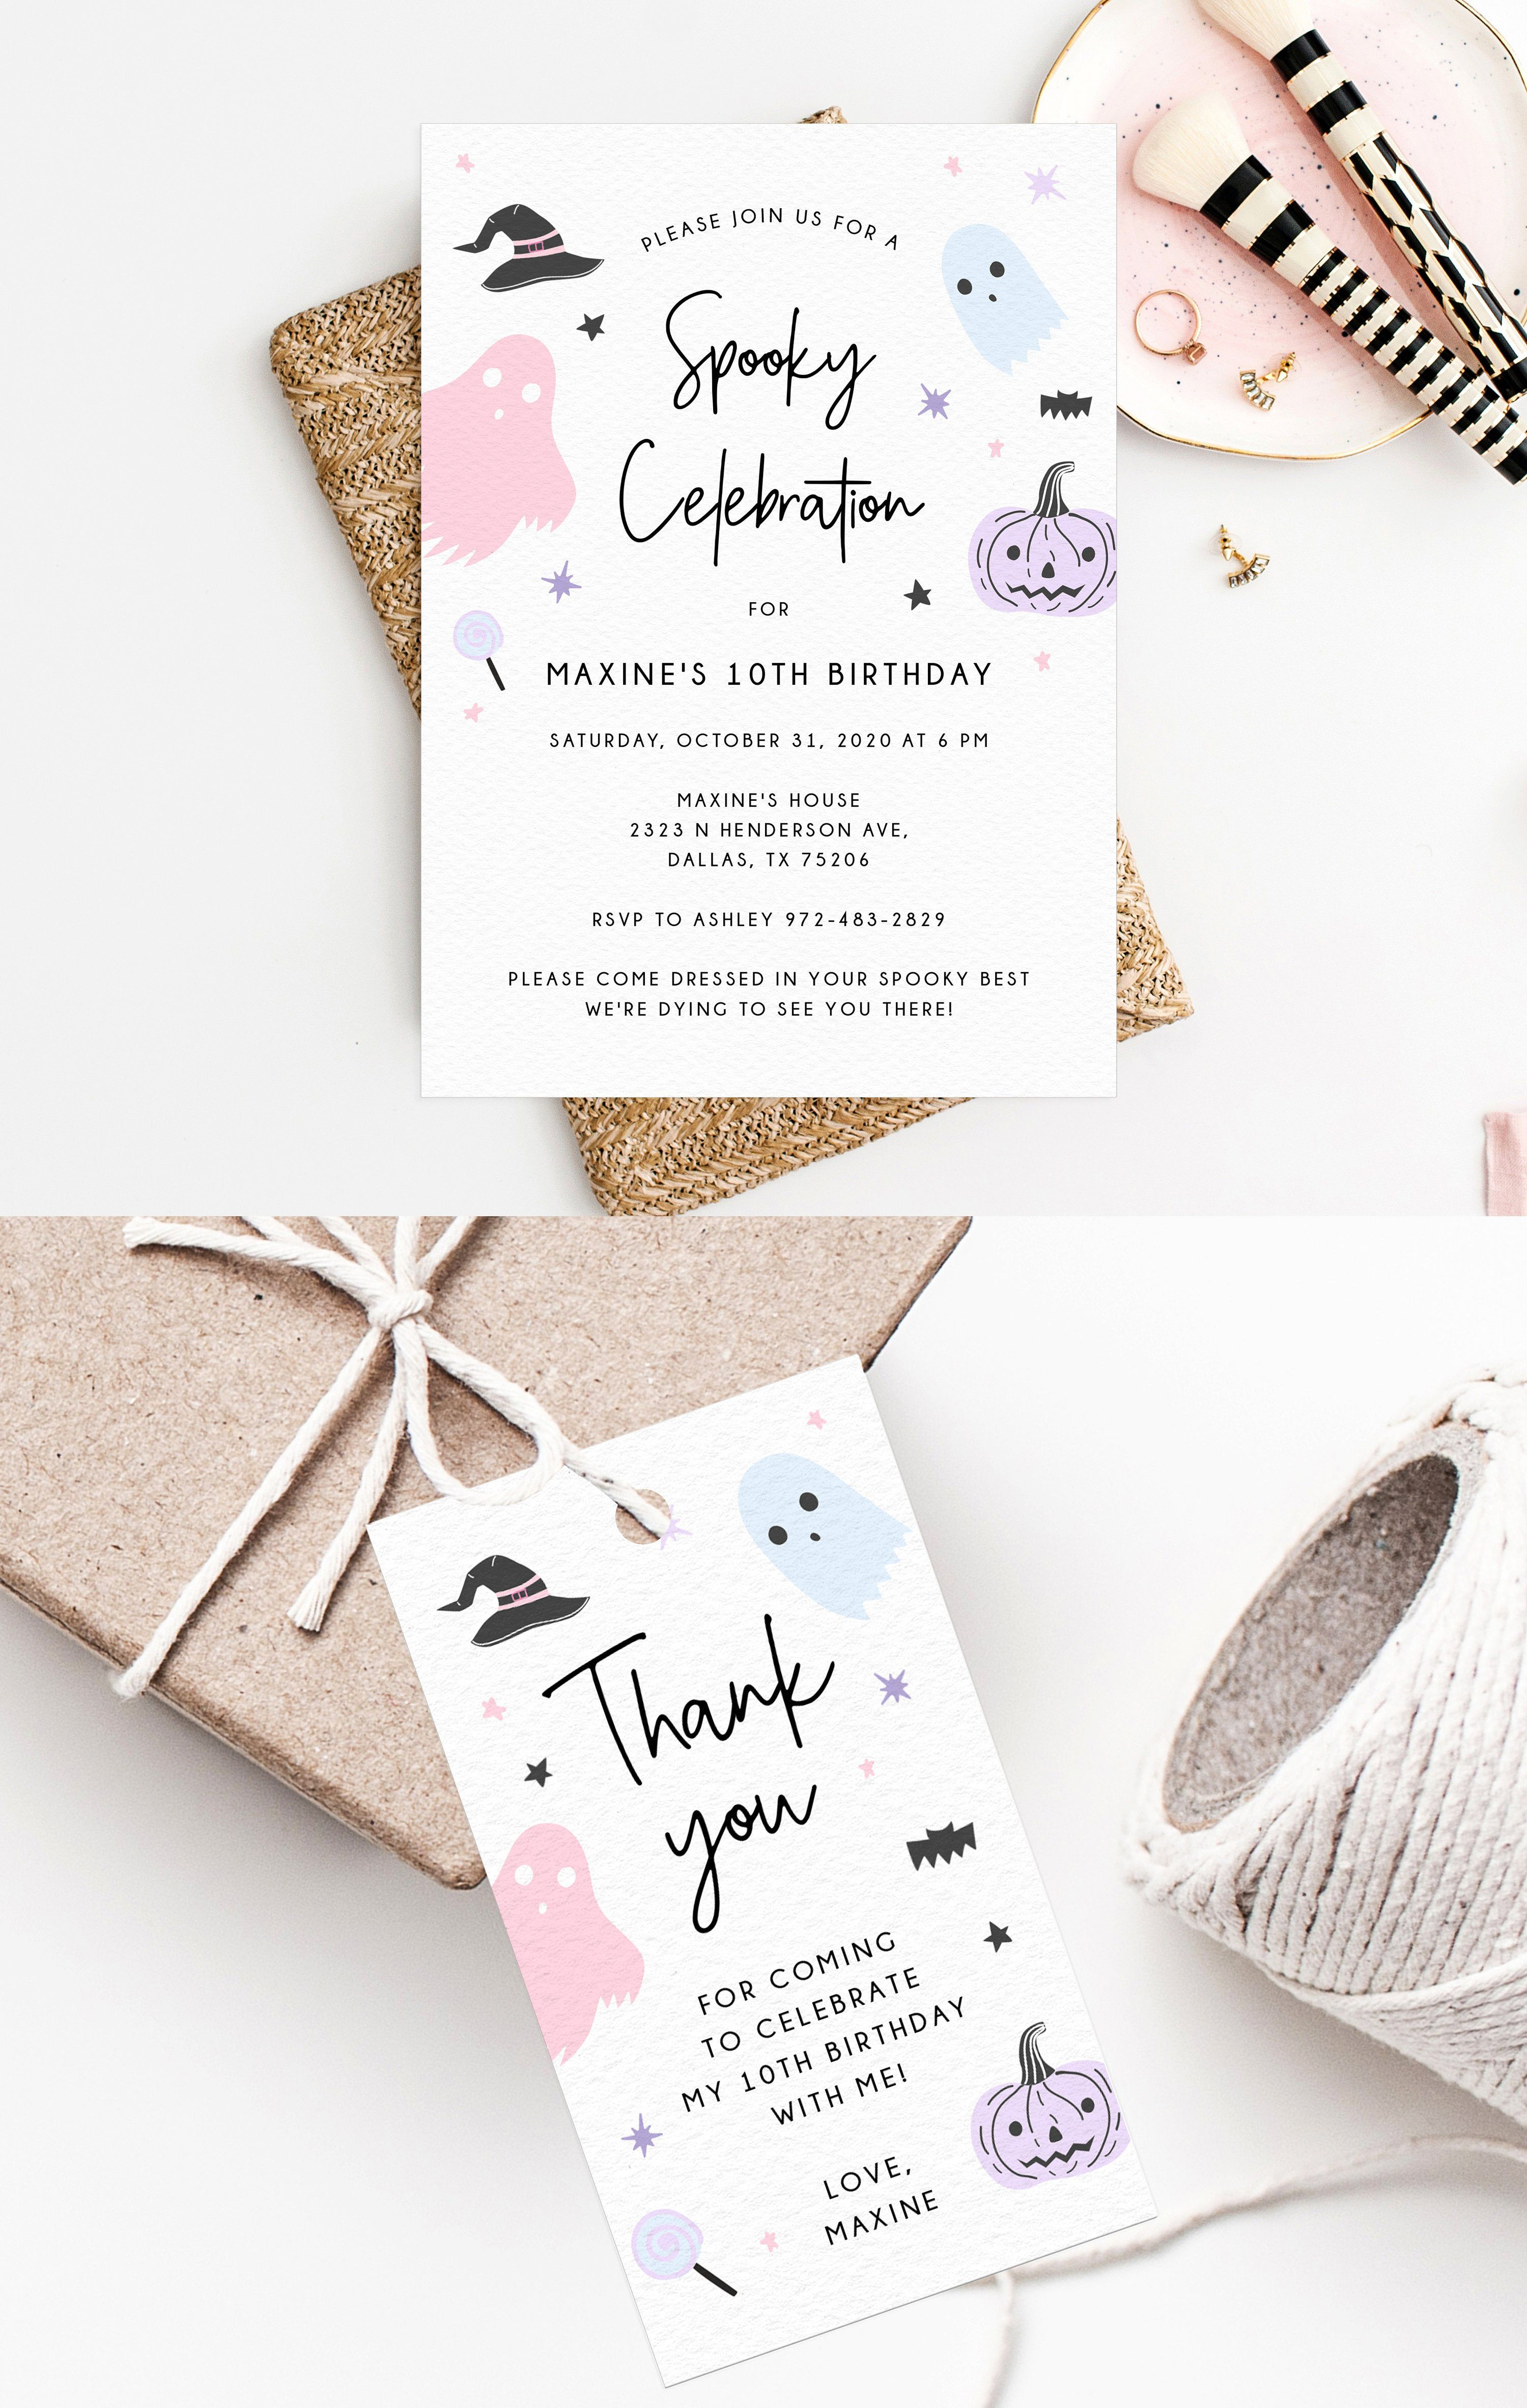 When Is Halloween Celebrated In Dallas, Tx 2020 Halloween Party Invitation Template, Printable Pastel Halloween